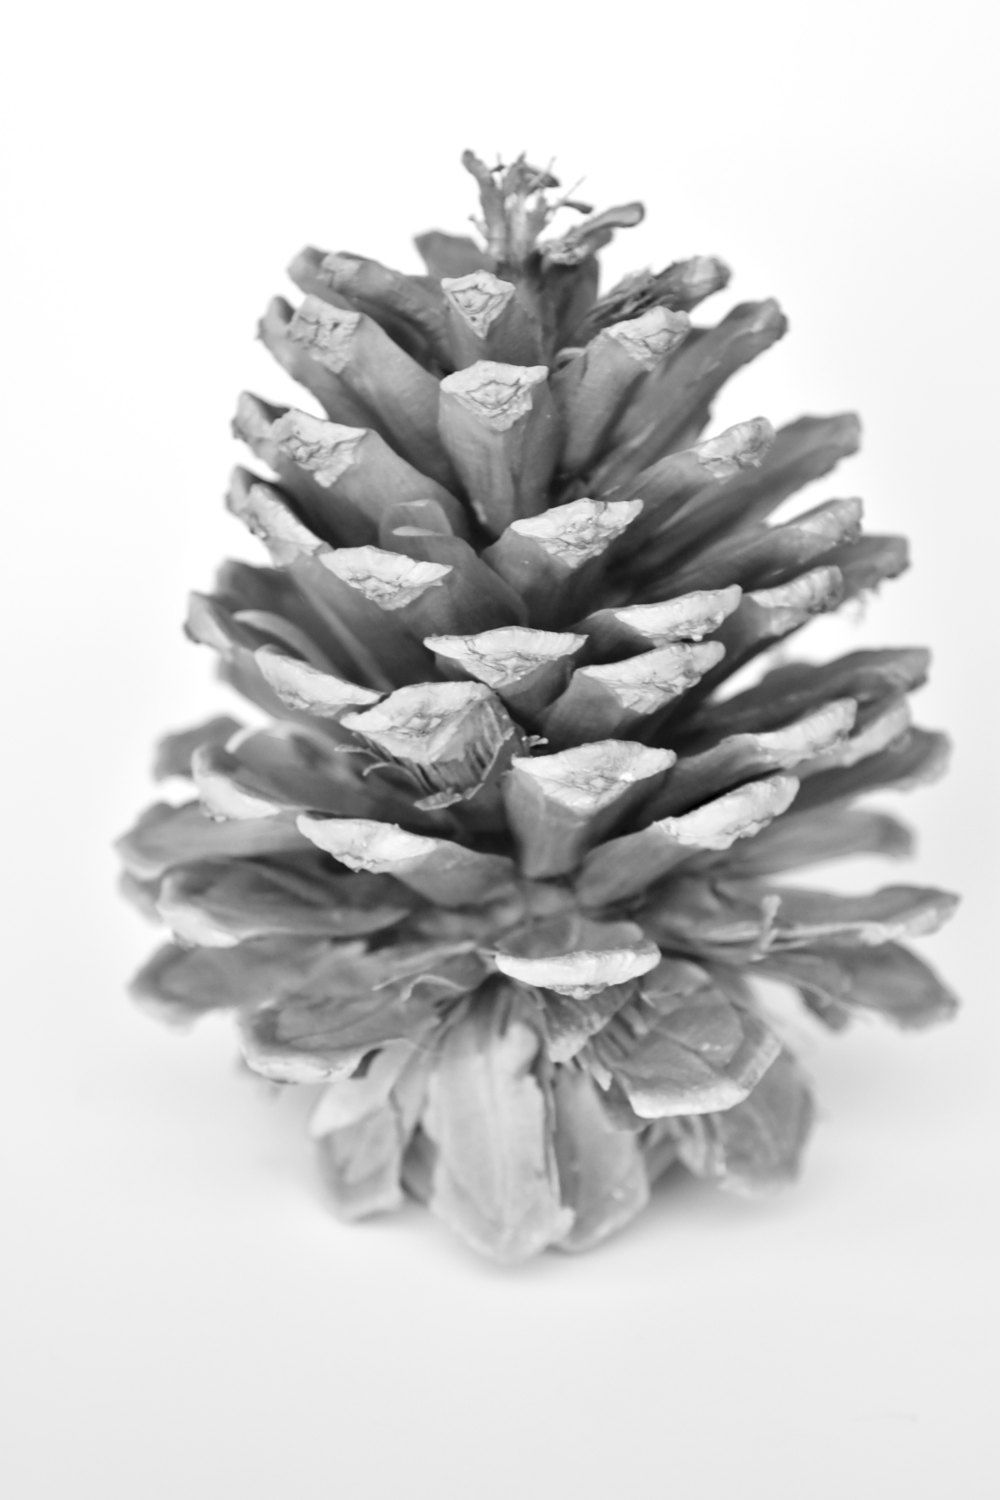 rustic black and white pinecone instant photography